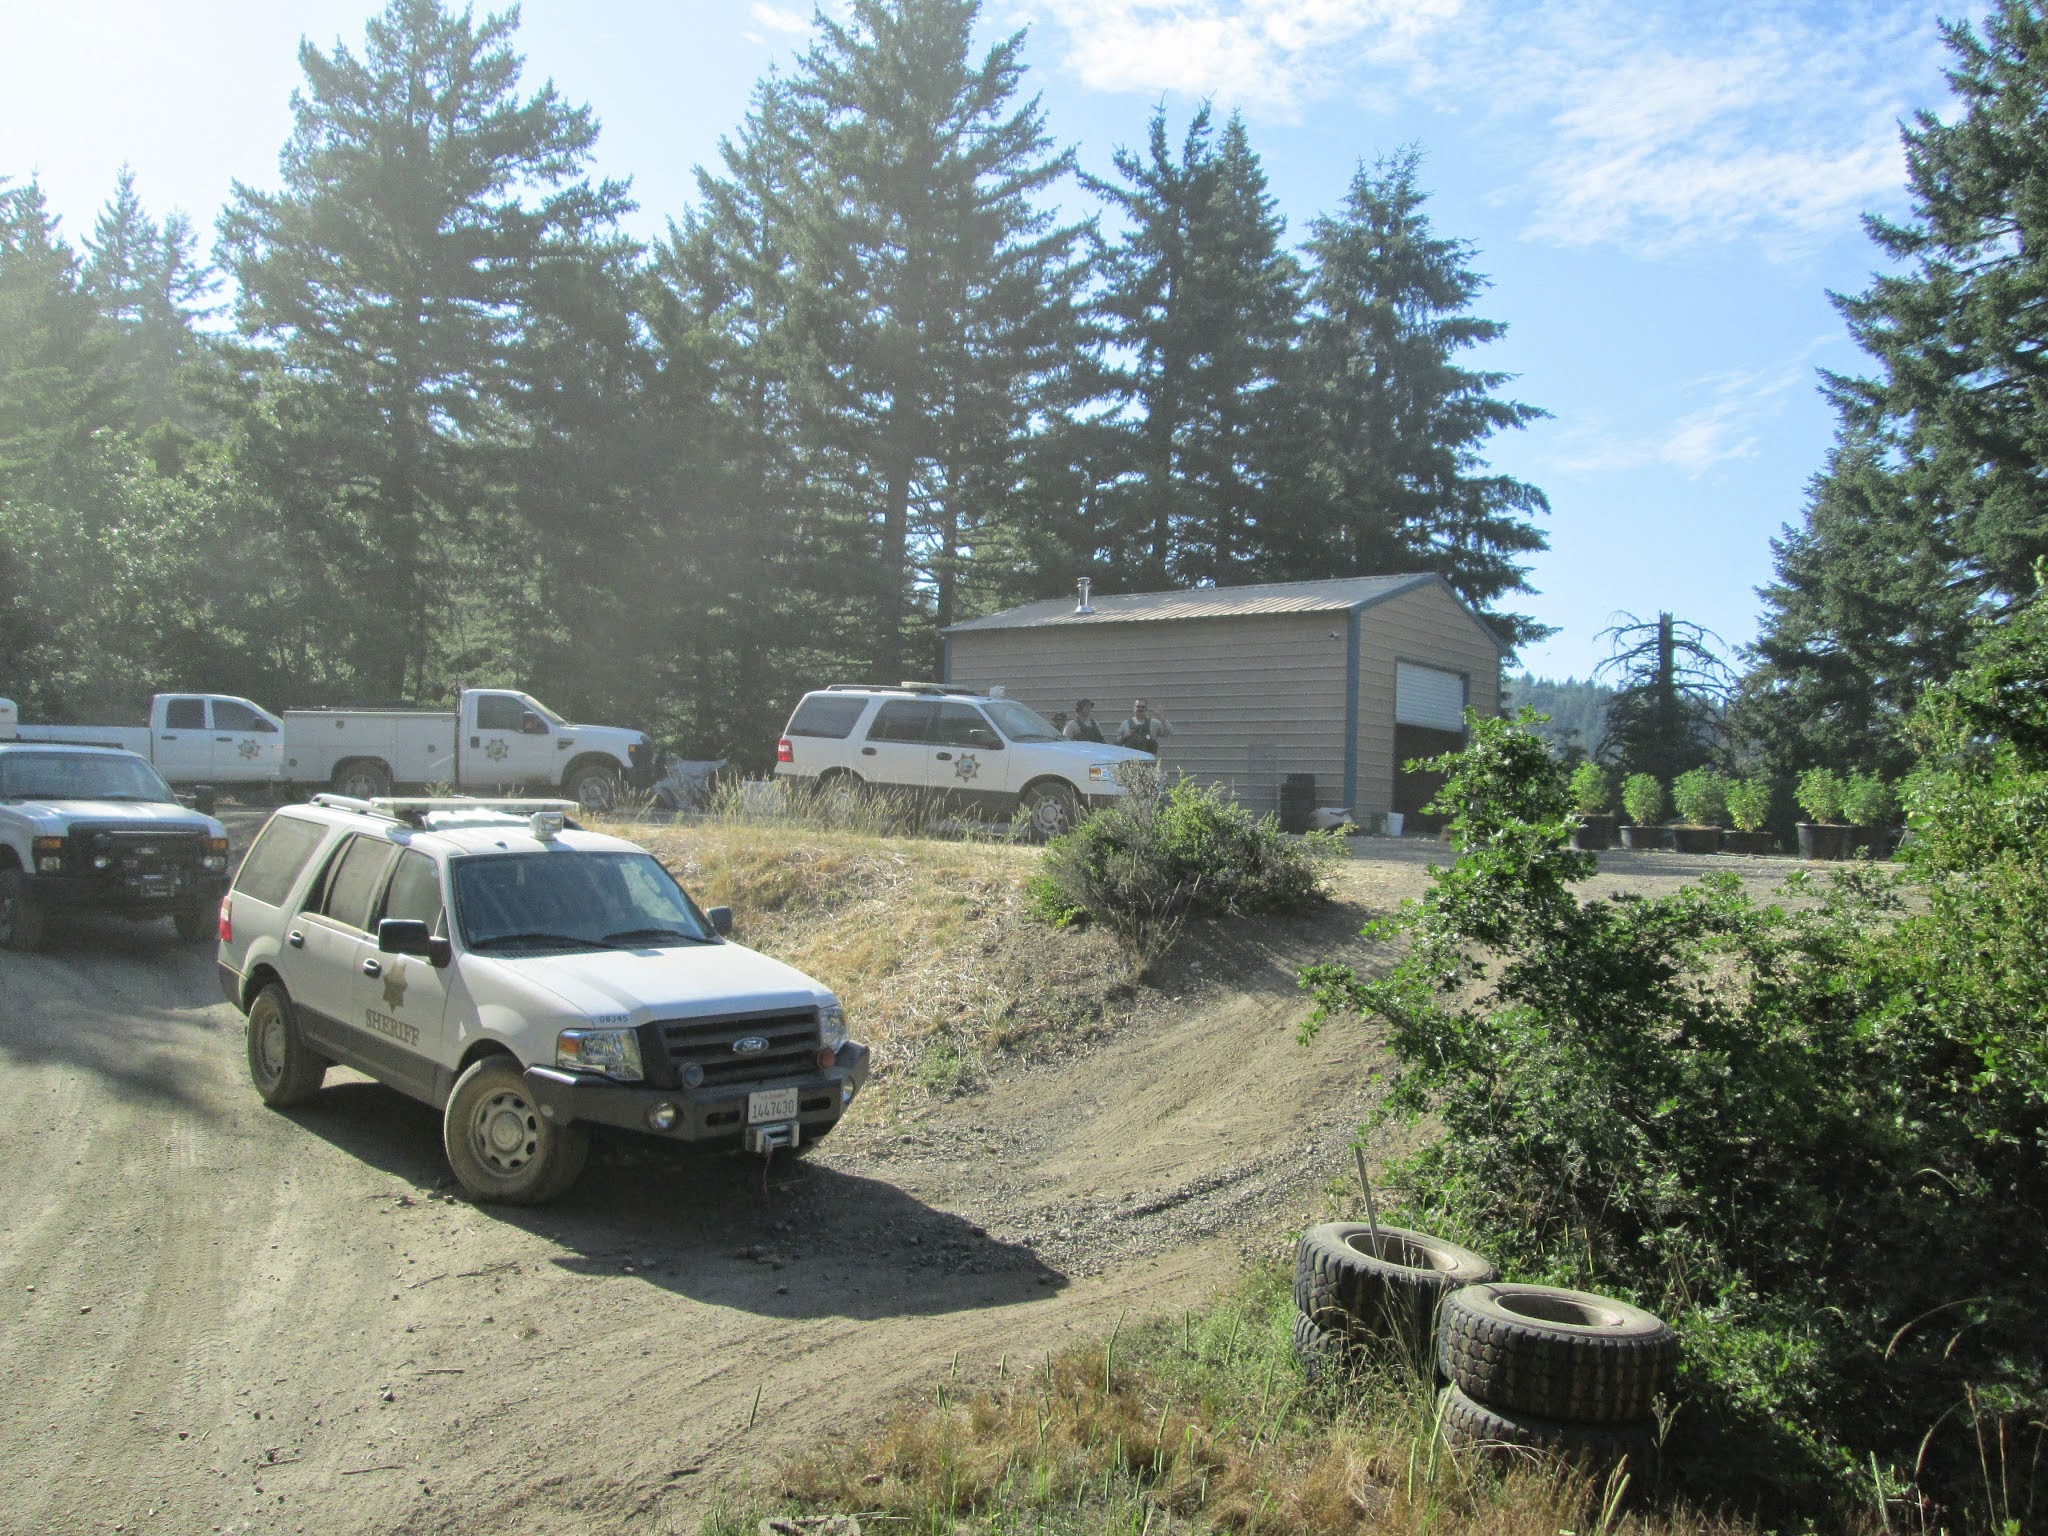 Sheriff's Deputy vehicles at an illegal grow site